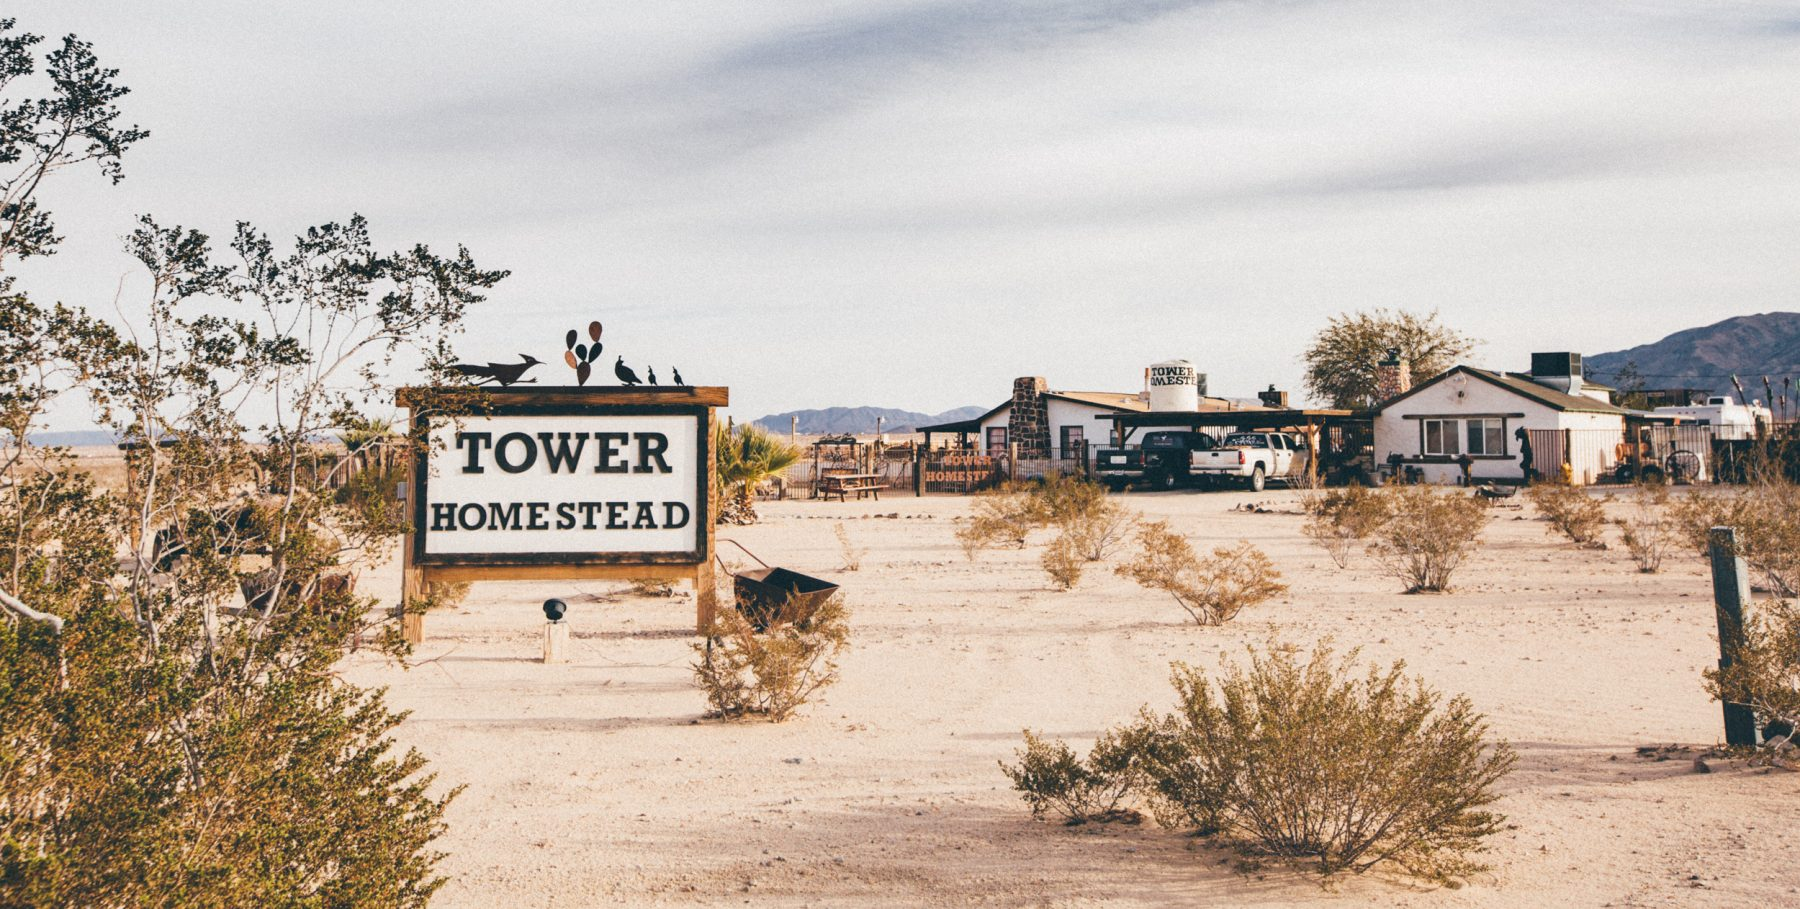 Tower Homestead Ranch An Old West Wedding Venue In The High Desert Quail Dove